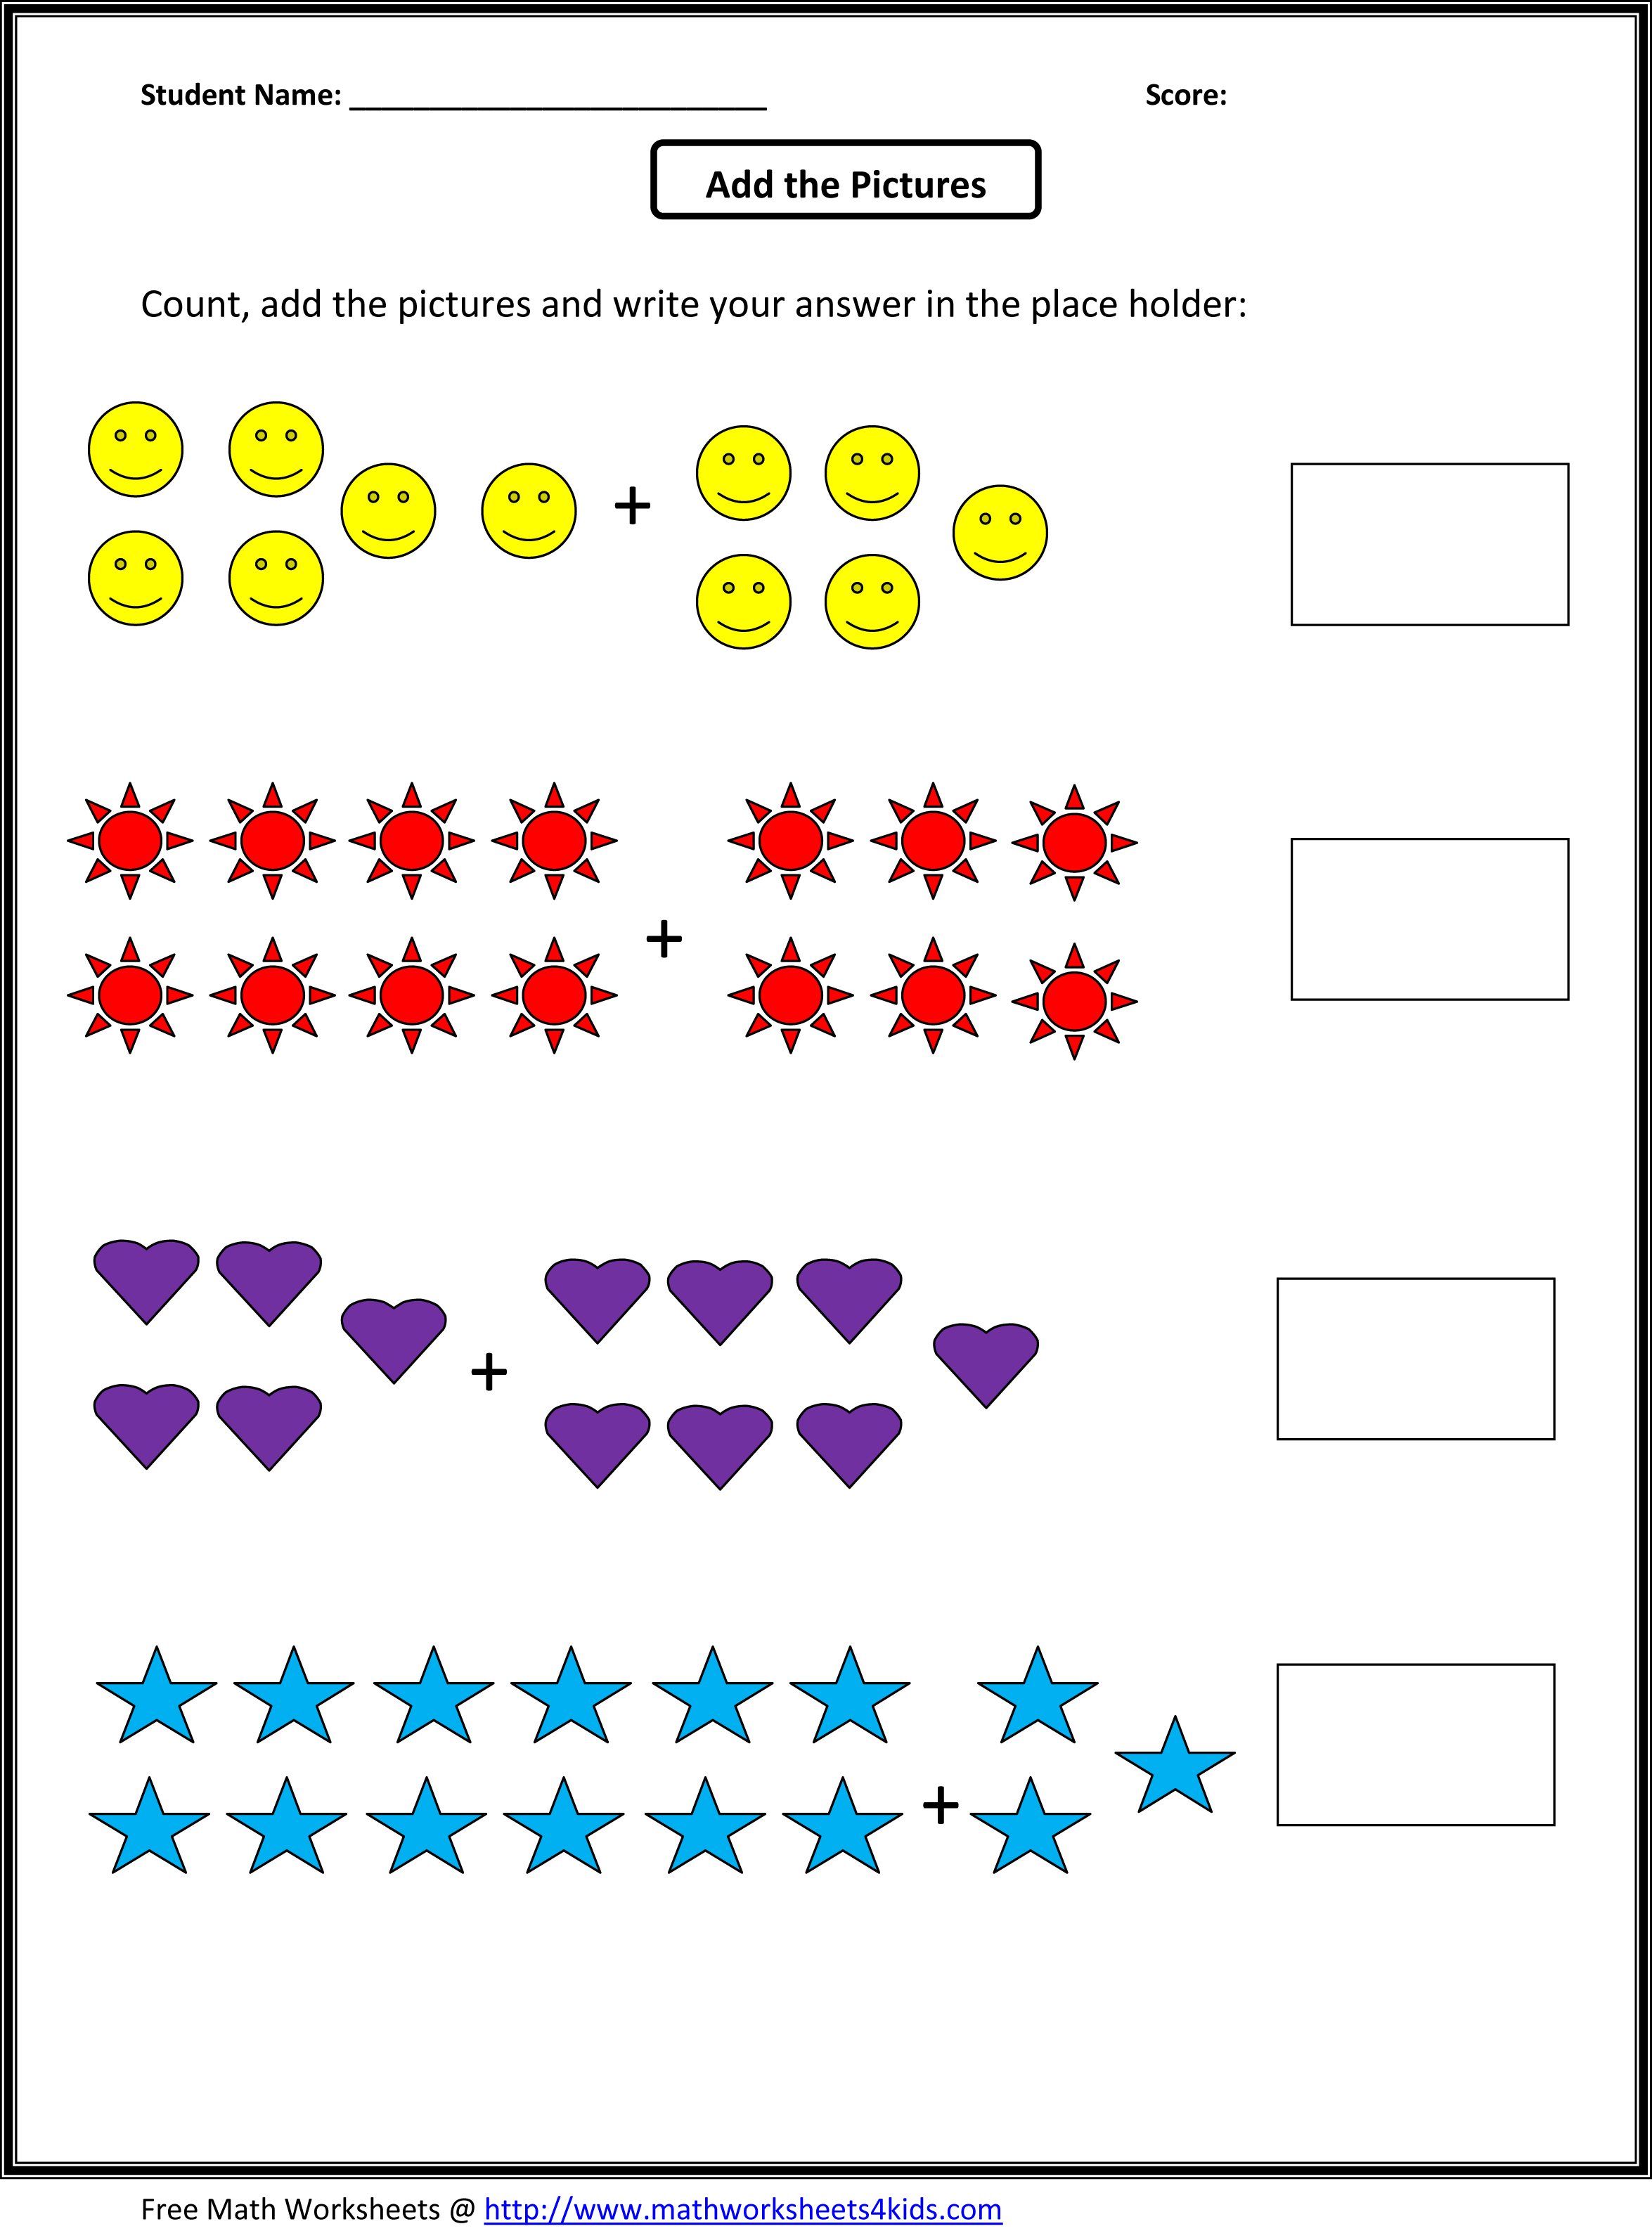 Aldiablosus  Wonderful Grade  Maths Worksheet  Reocurent With Exciting Math Worksheets For St Grade Free  Reocurent With Cool Measuring Worksheets Ks Also Math Worksheets On Area And Perimeter In Addition English Grammar Sentence Structure Worksheets And Decimal Number Lines Worksheets As Well As Worksheets For Senior Kg Additionally Fraction Practice Worksheets With Answers From Reocurentcom With Aldiablosus  Exciting Grade  Maths Worksheet  Reocurent With Cool Math Worksheets For St Grade Free  Reocurent And Wonderful Measuring Worksheets Ks Also Math Worksheets On Area And Perimeter In Addition English Grammar Sentence Structure Worksheets From Reocurentcom